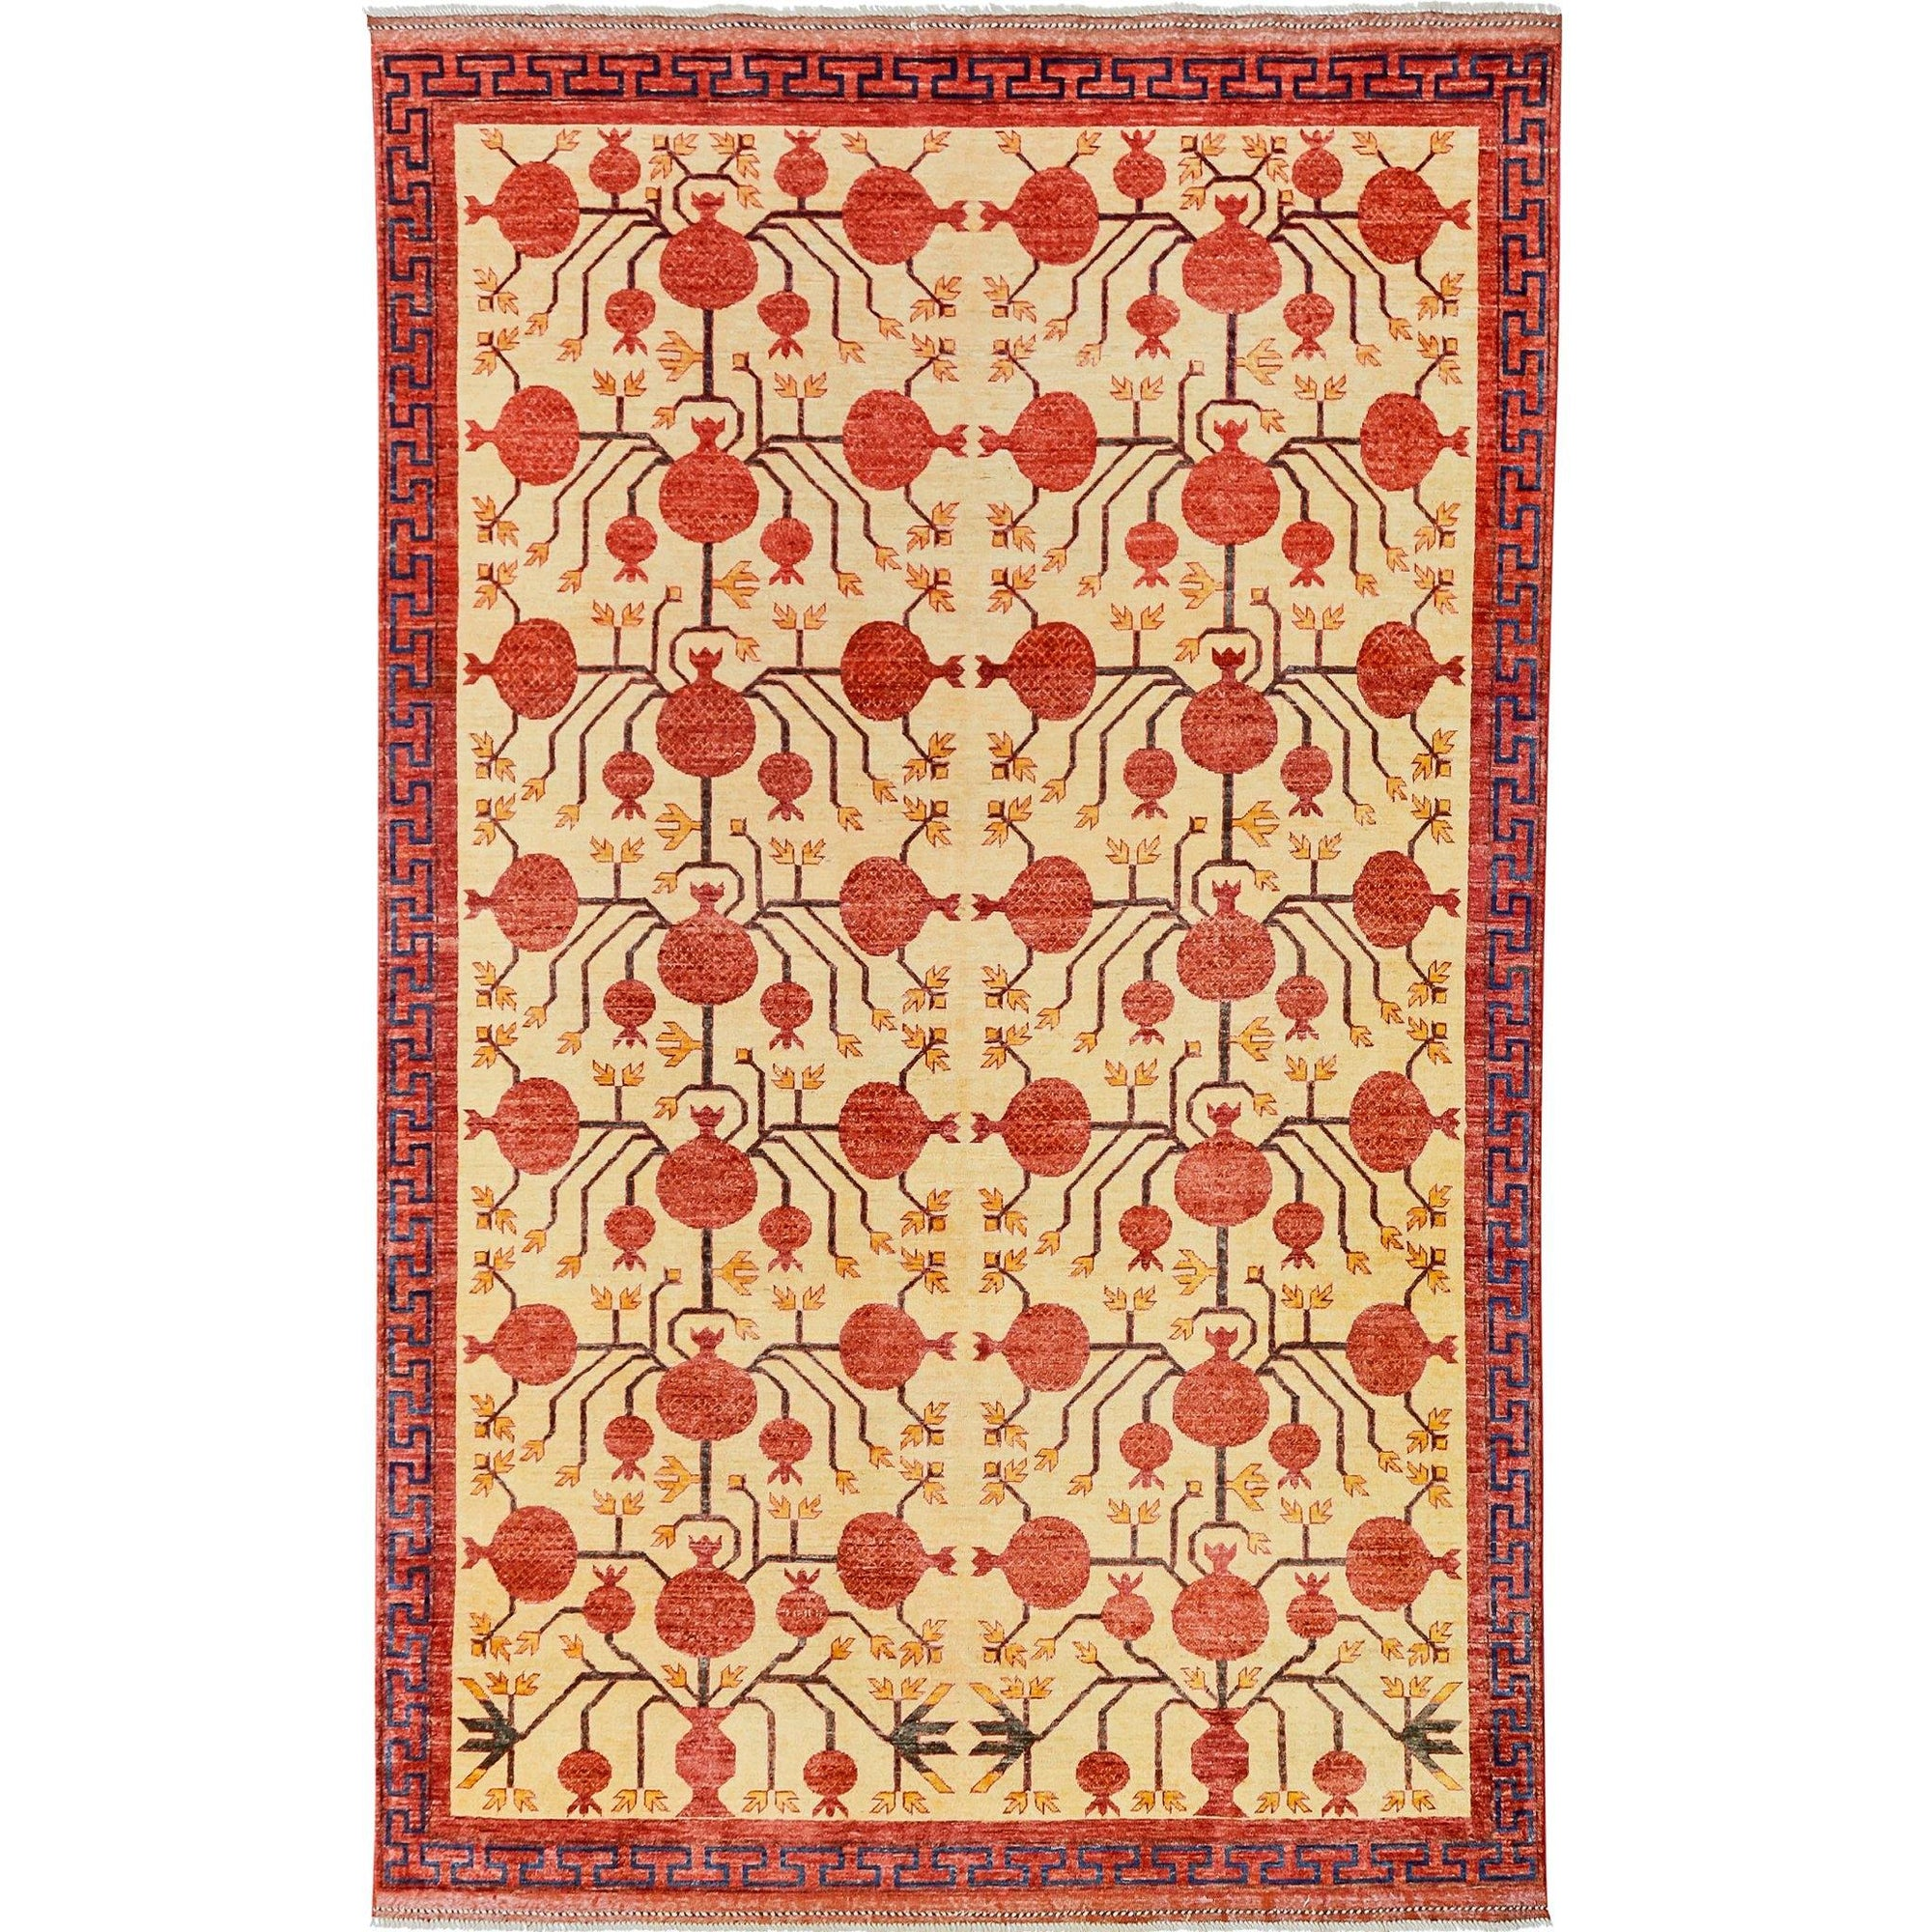 Fine Hand-knotted Tribal Wool Rug 224cm x 329cm Persian-Rug | House-of-Haghi | NewMarket | Auckland | NZ | Handmade Persian Rugs | Hand Knotted Persian Rugs